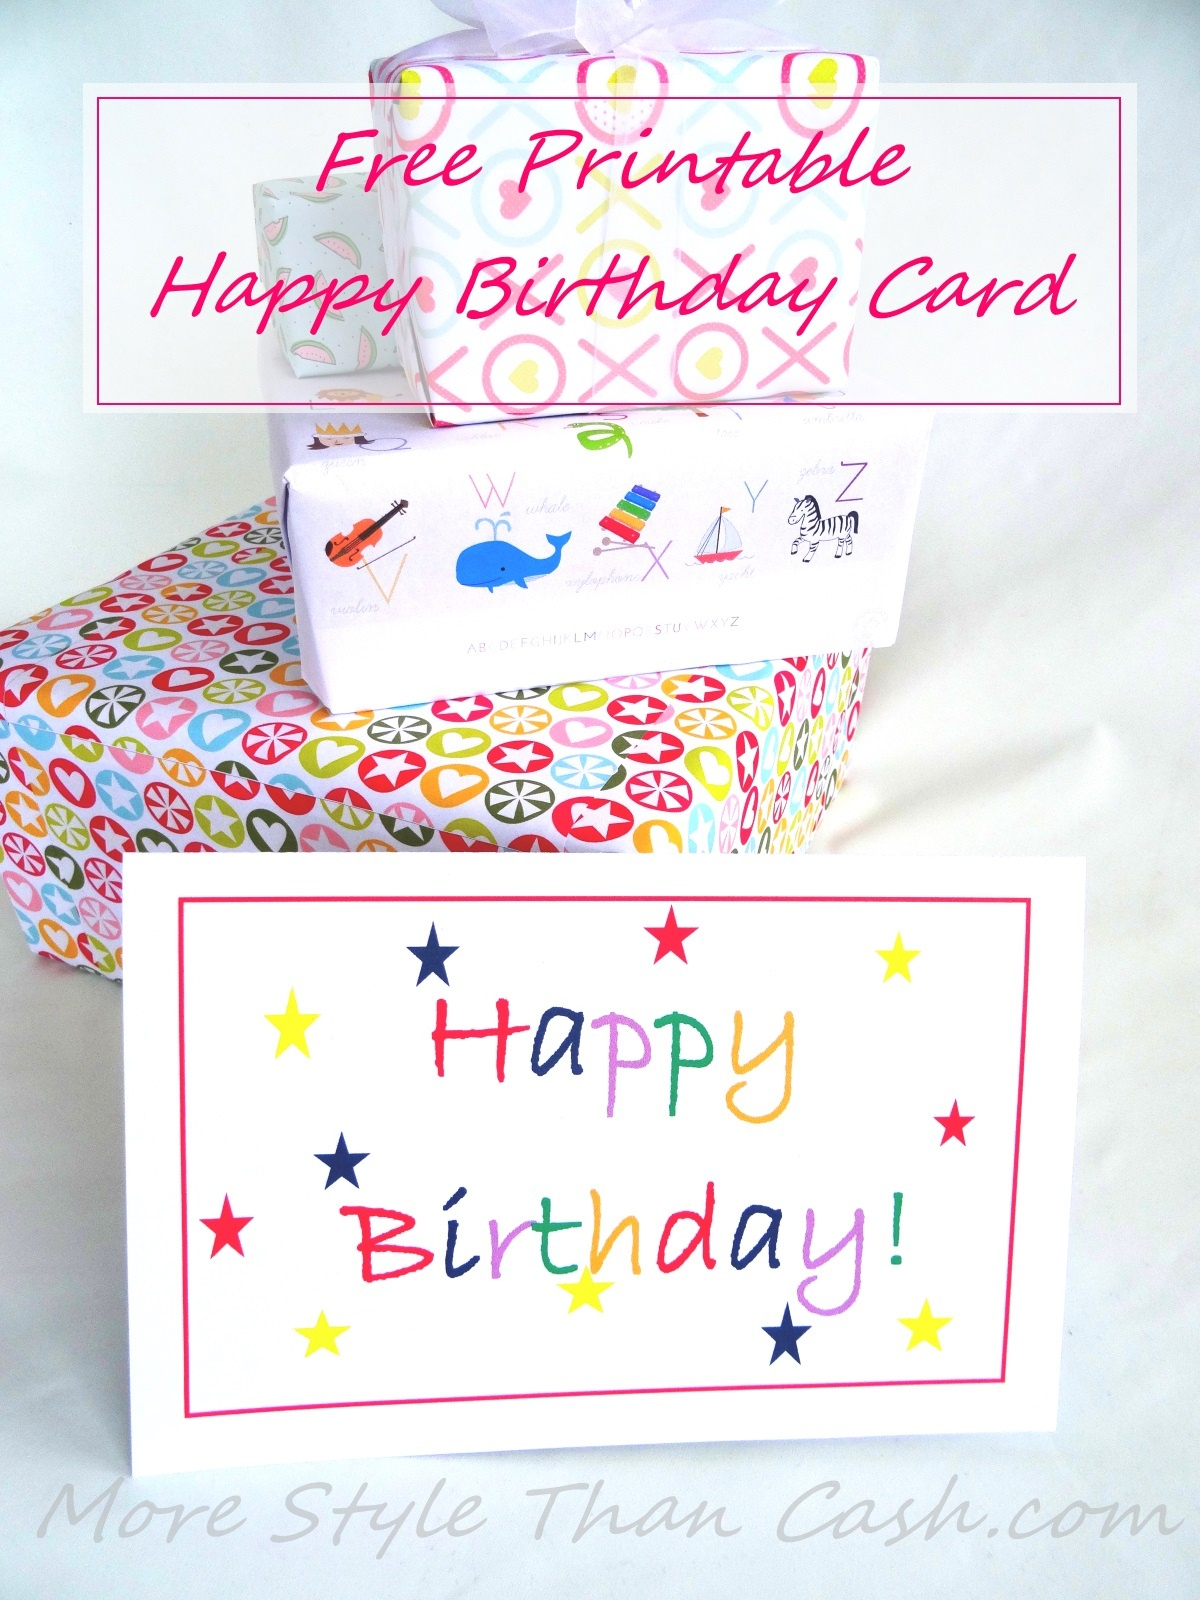 Free Printable Birthday Card - Free Printable Greeting Cards